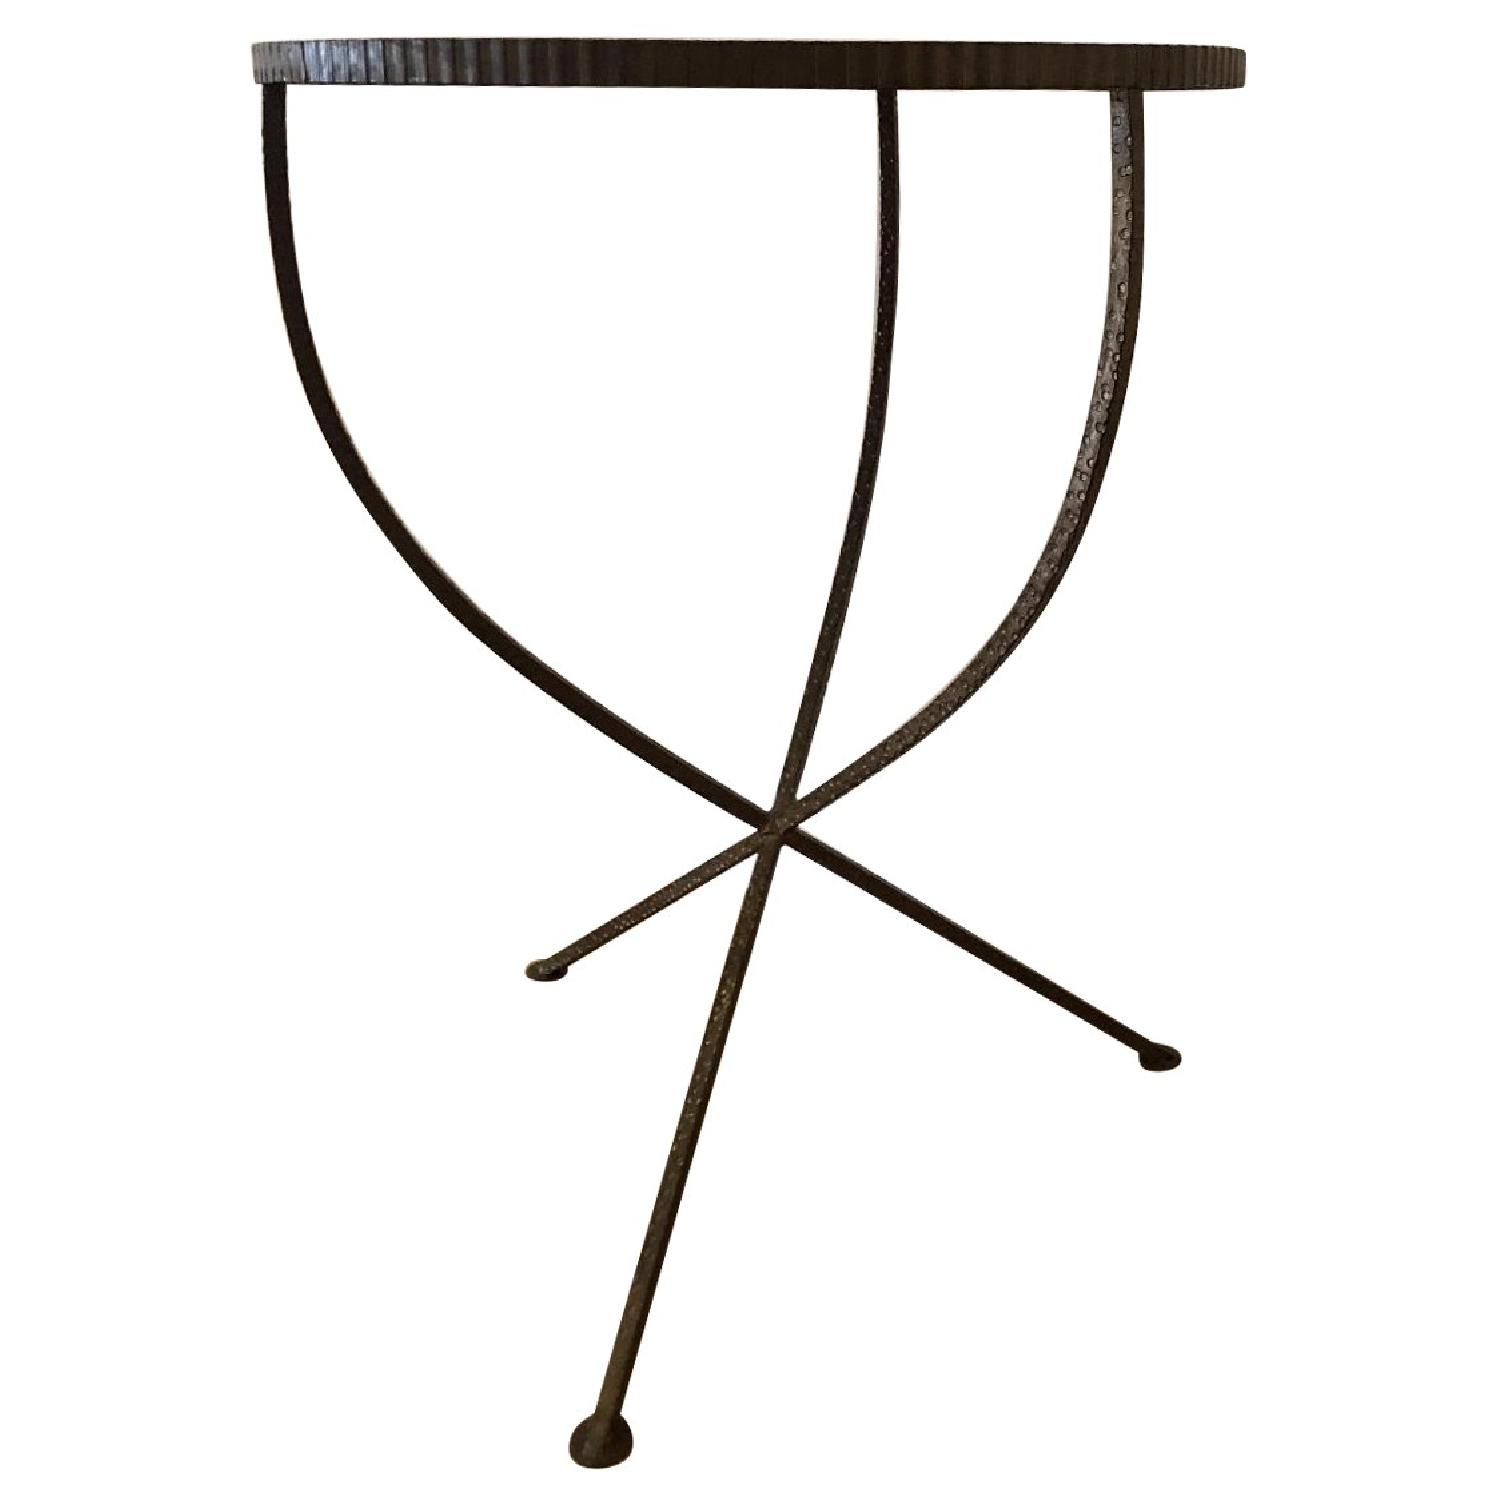 ABC Carpet and Home Iron Side Table w/ Mirrored Top - image-5